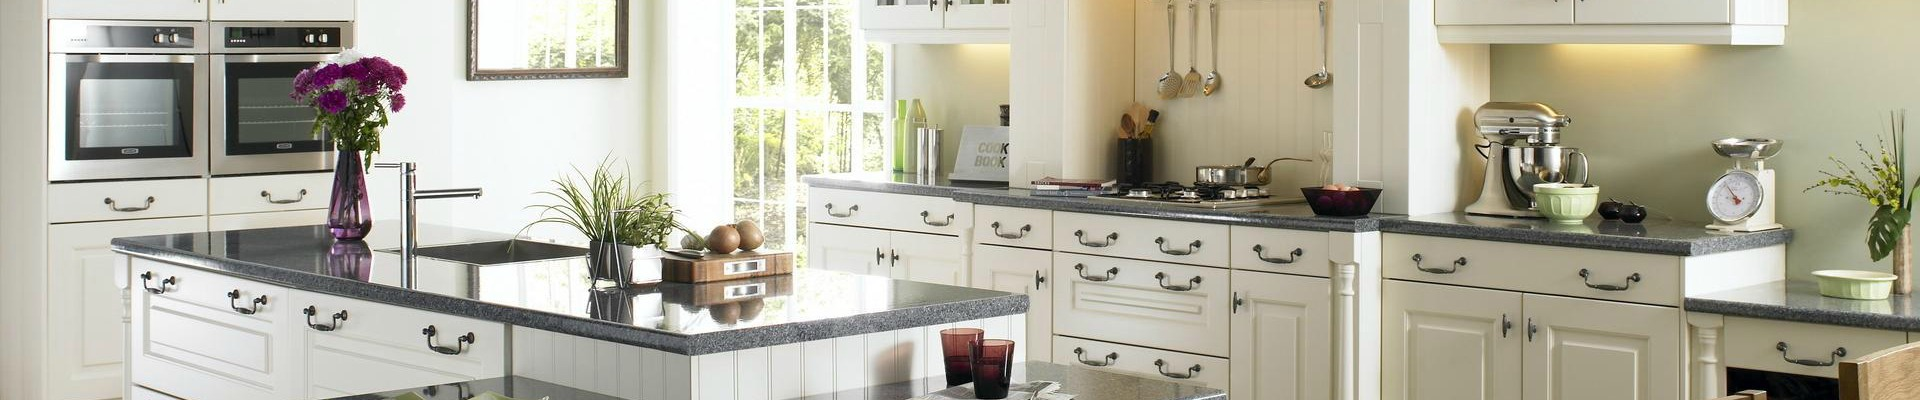 Painting tips how to choose kitchen paint colors - How to pick paint colors ...